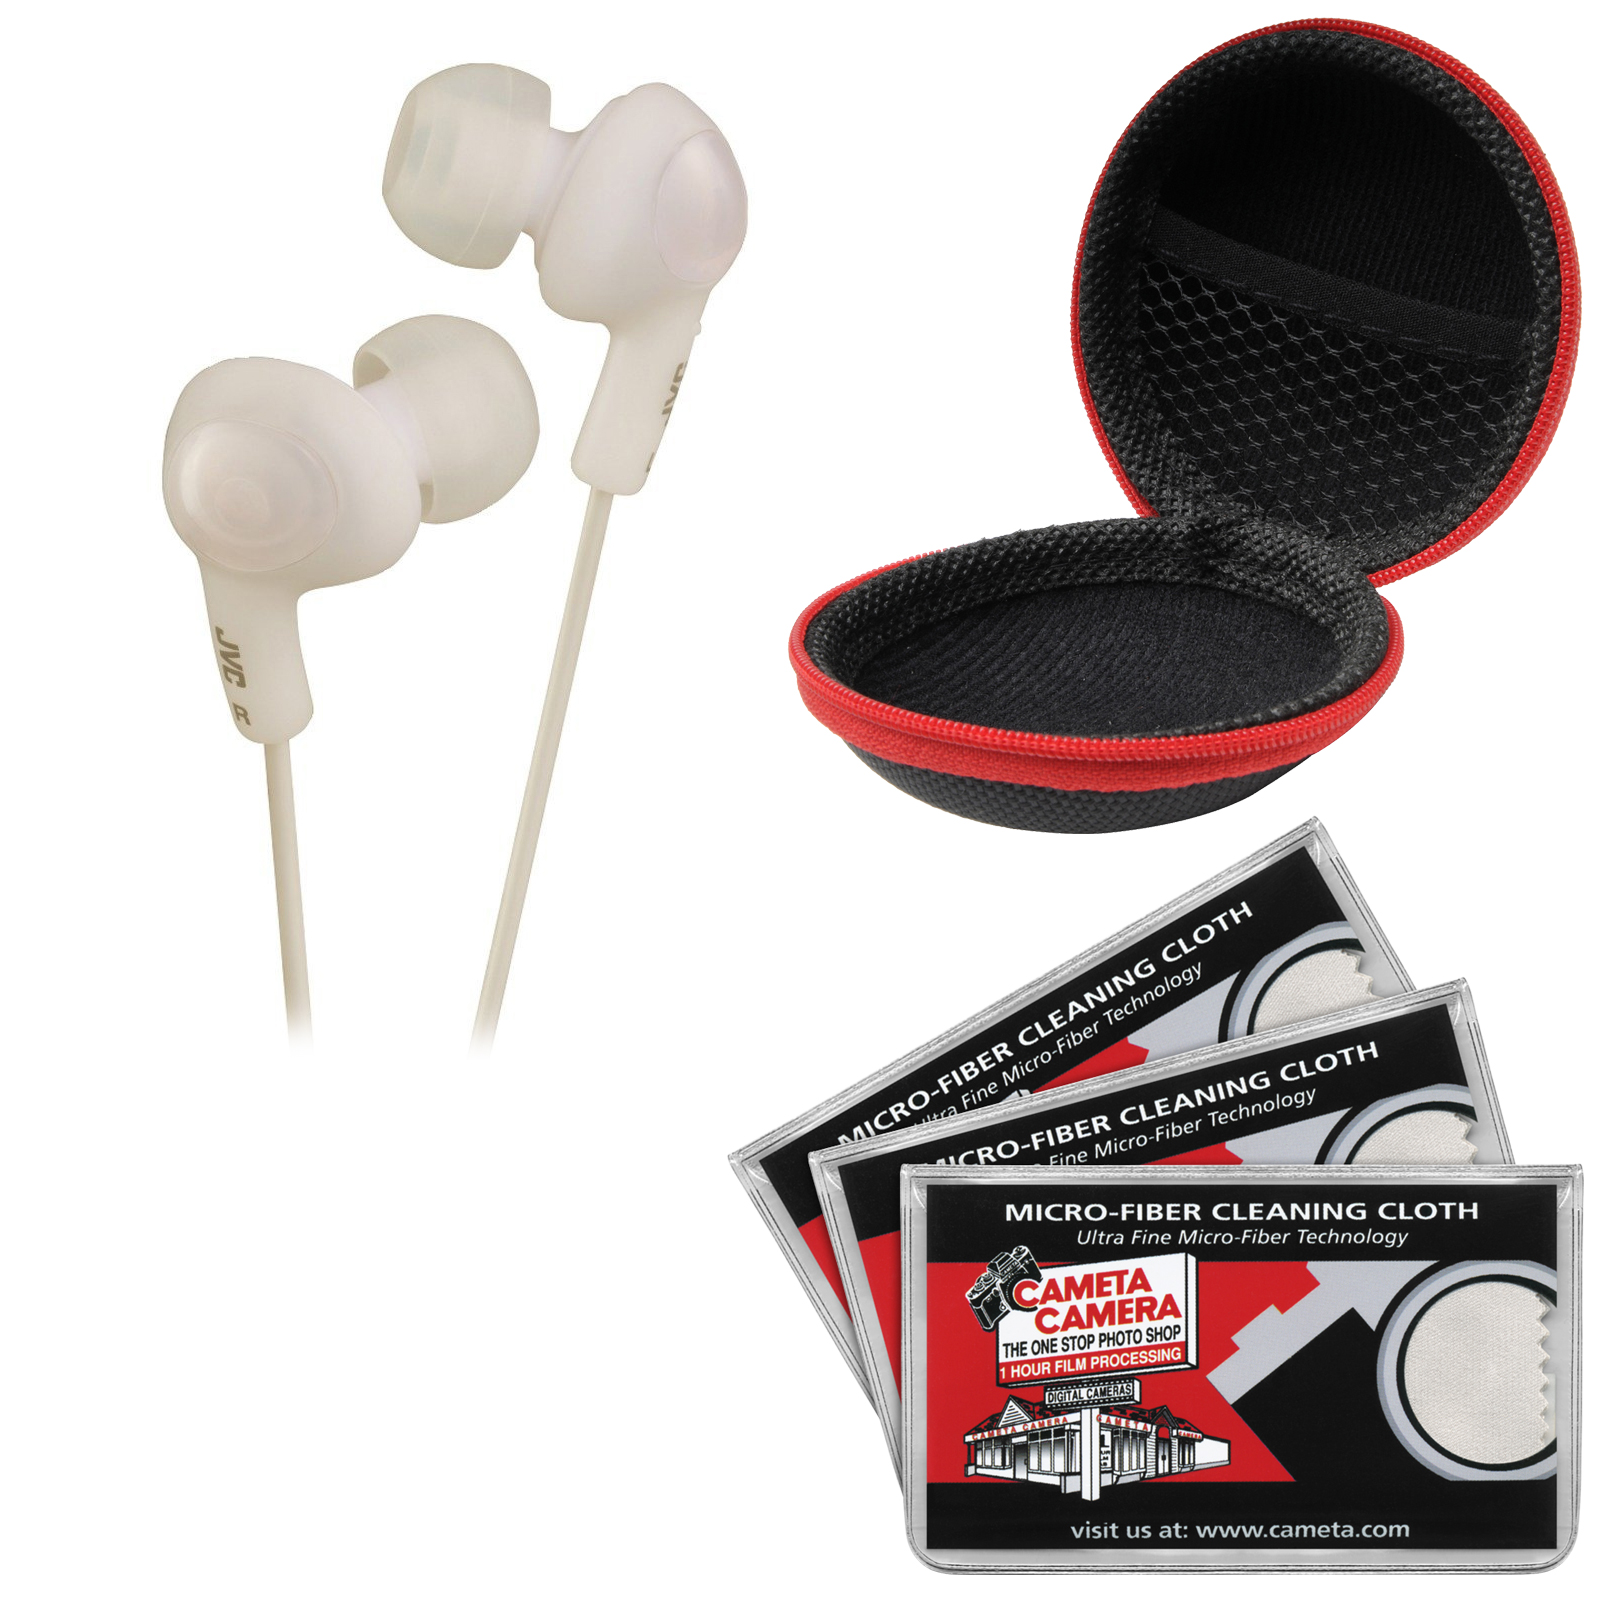 JVC HA-FX5 Gumy PLUS Headphones (White) with Case & 3 Microfiber Cloths